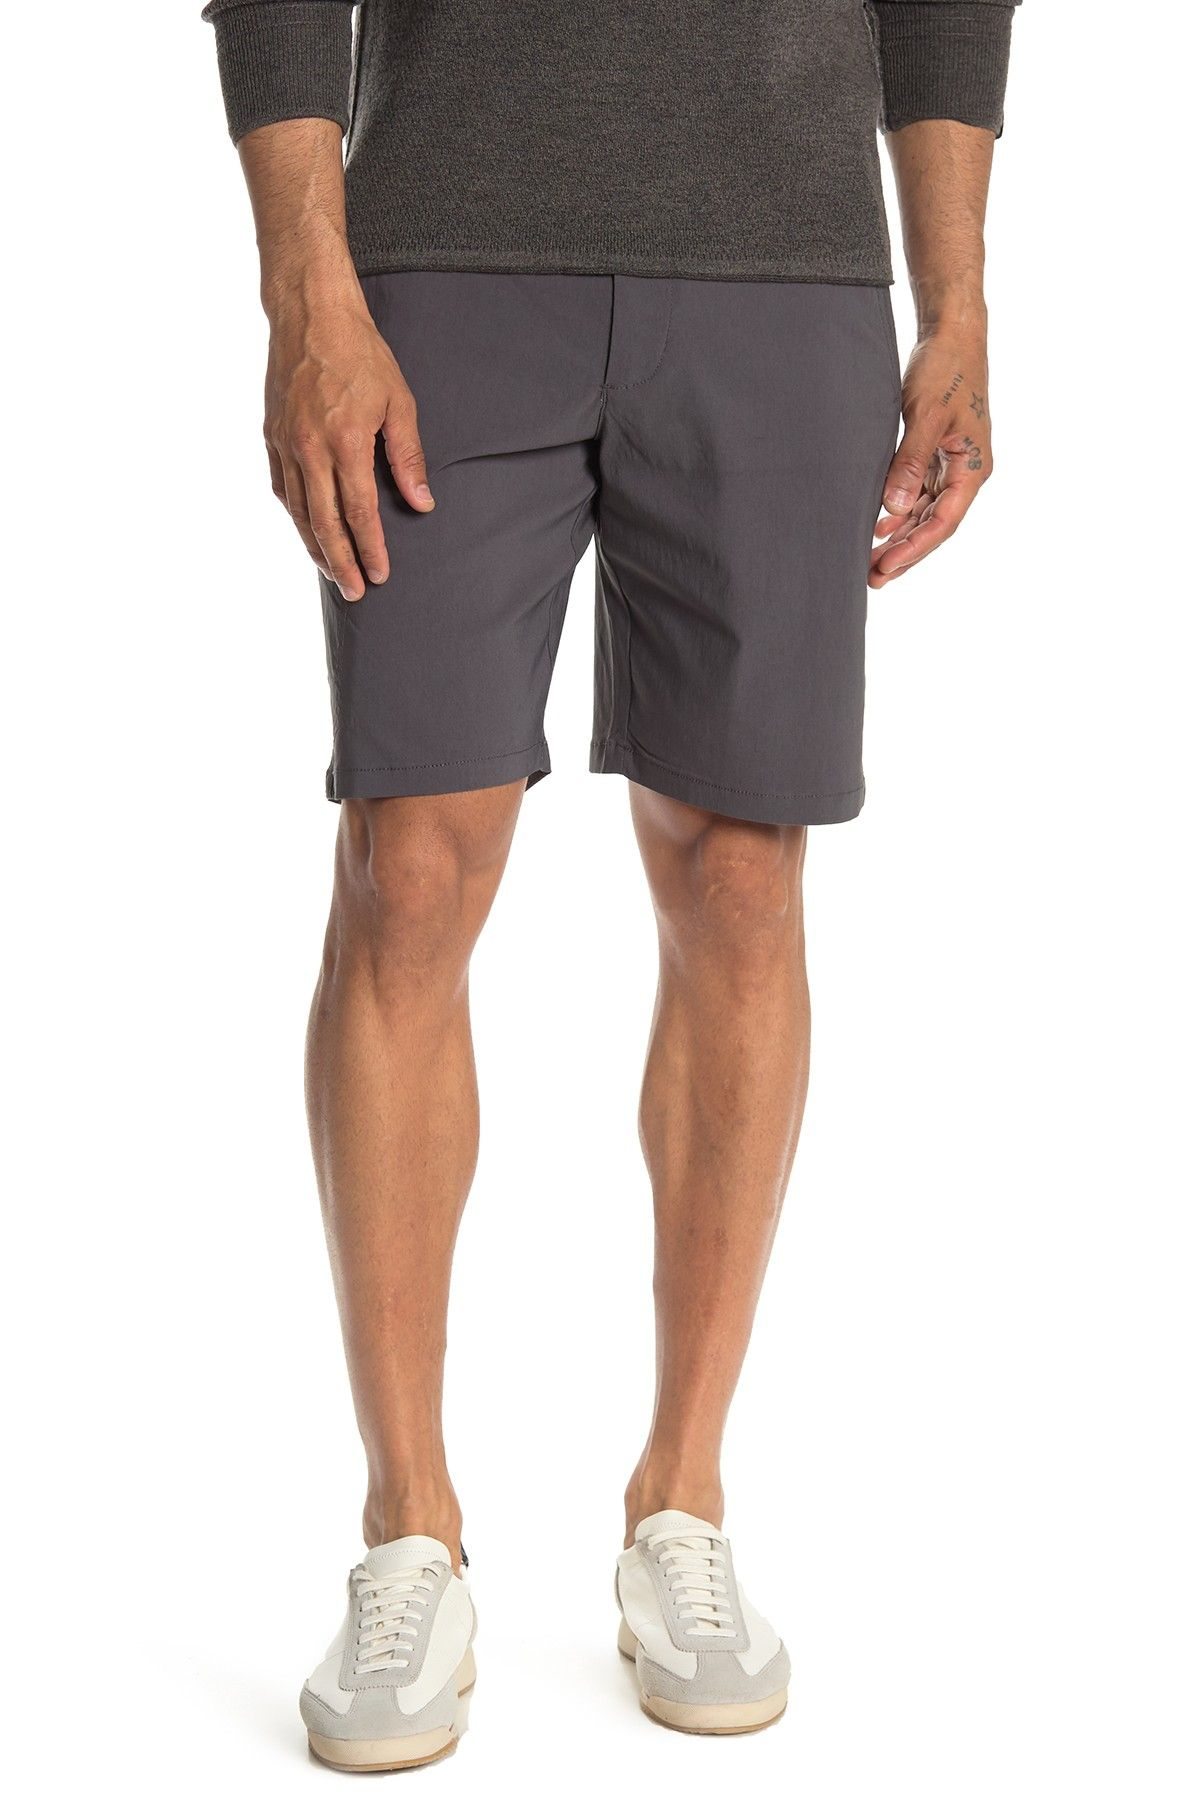 Tech Utility Shorts In Forged Iron English Laundry Shorts Clothes